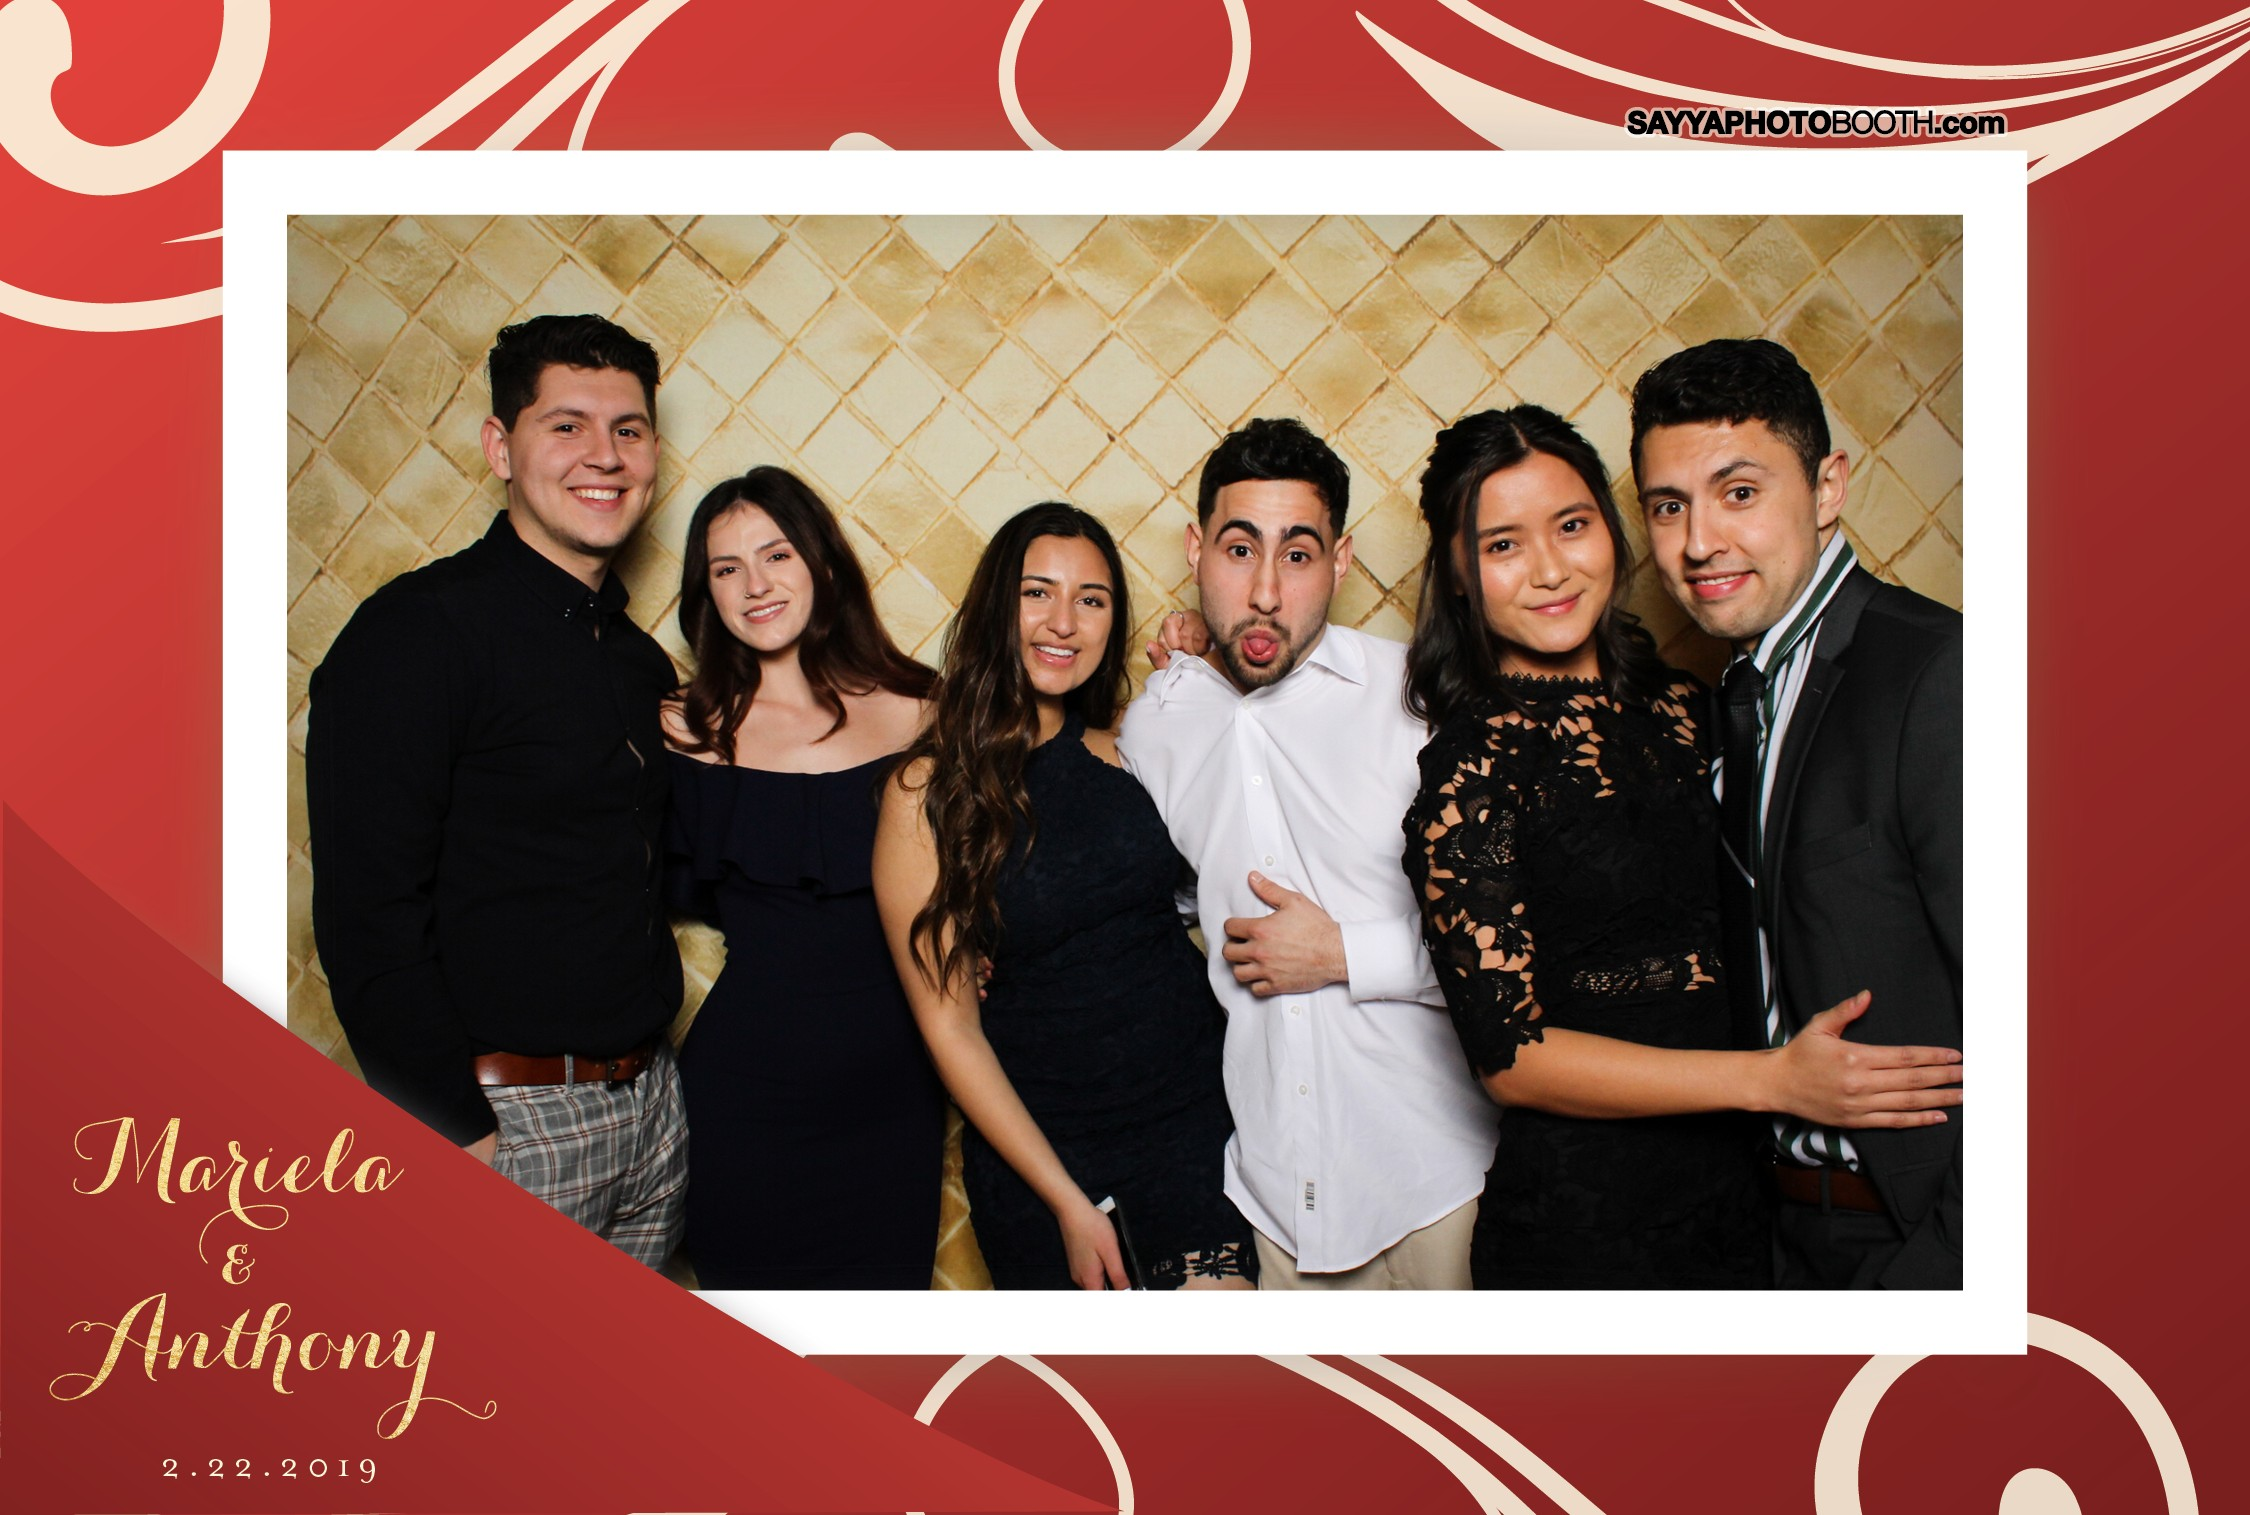 Mariela & Anthony's Wedding